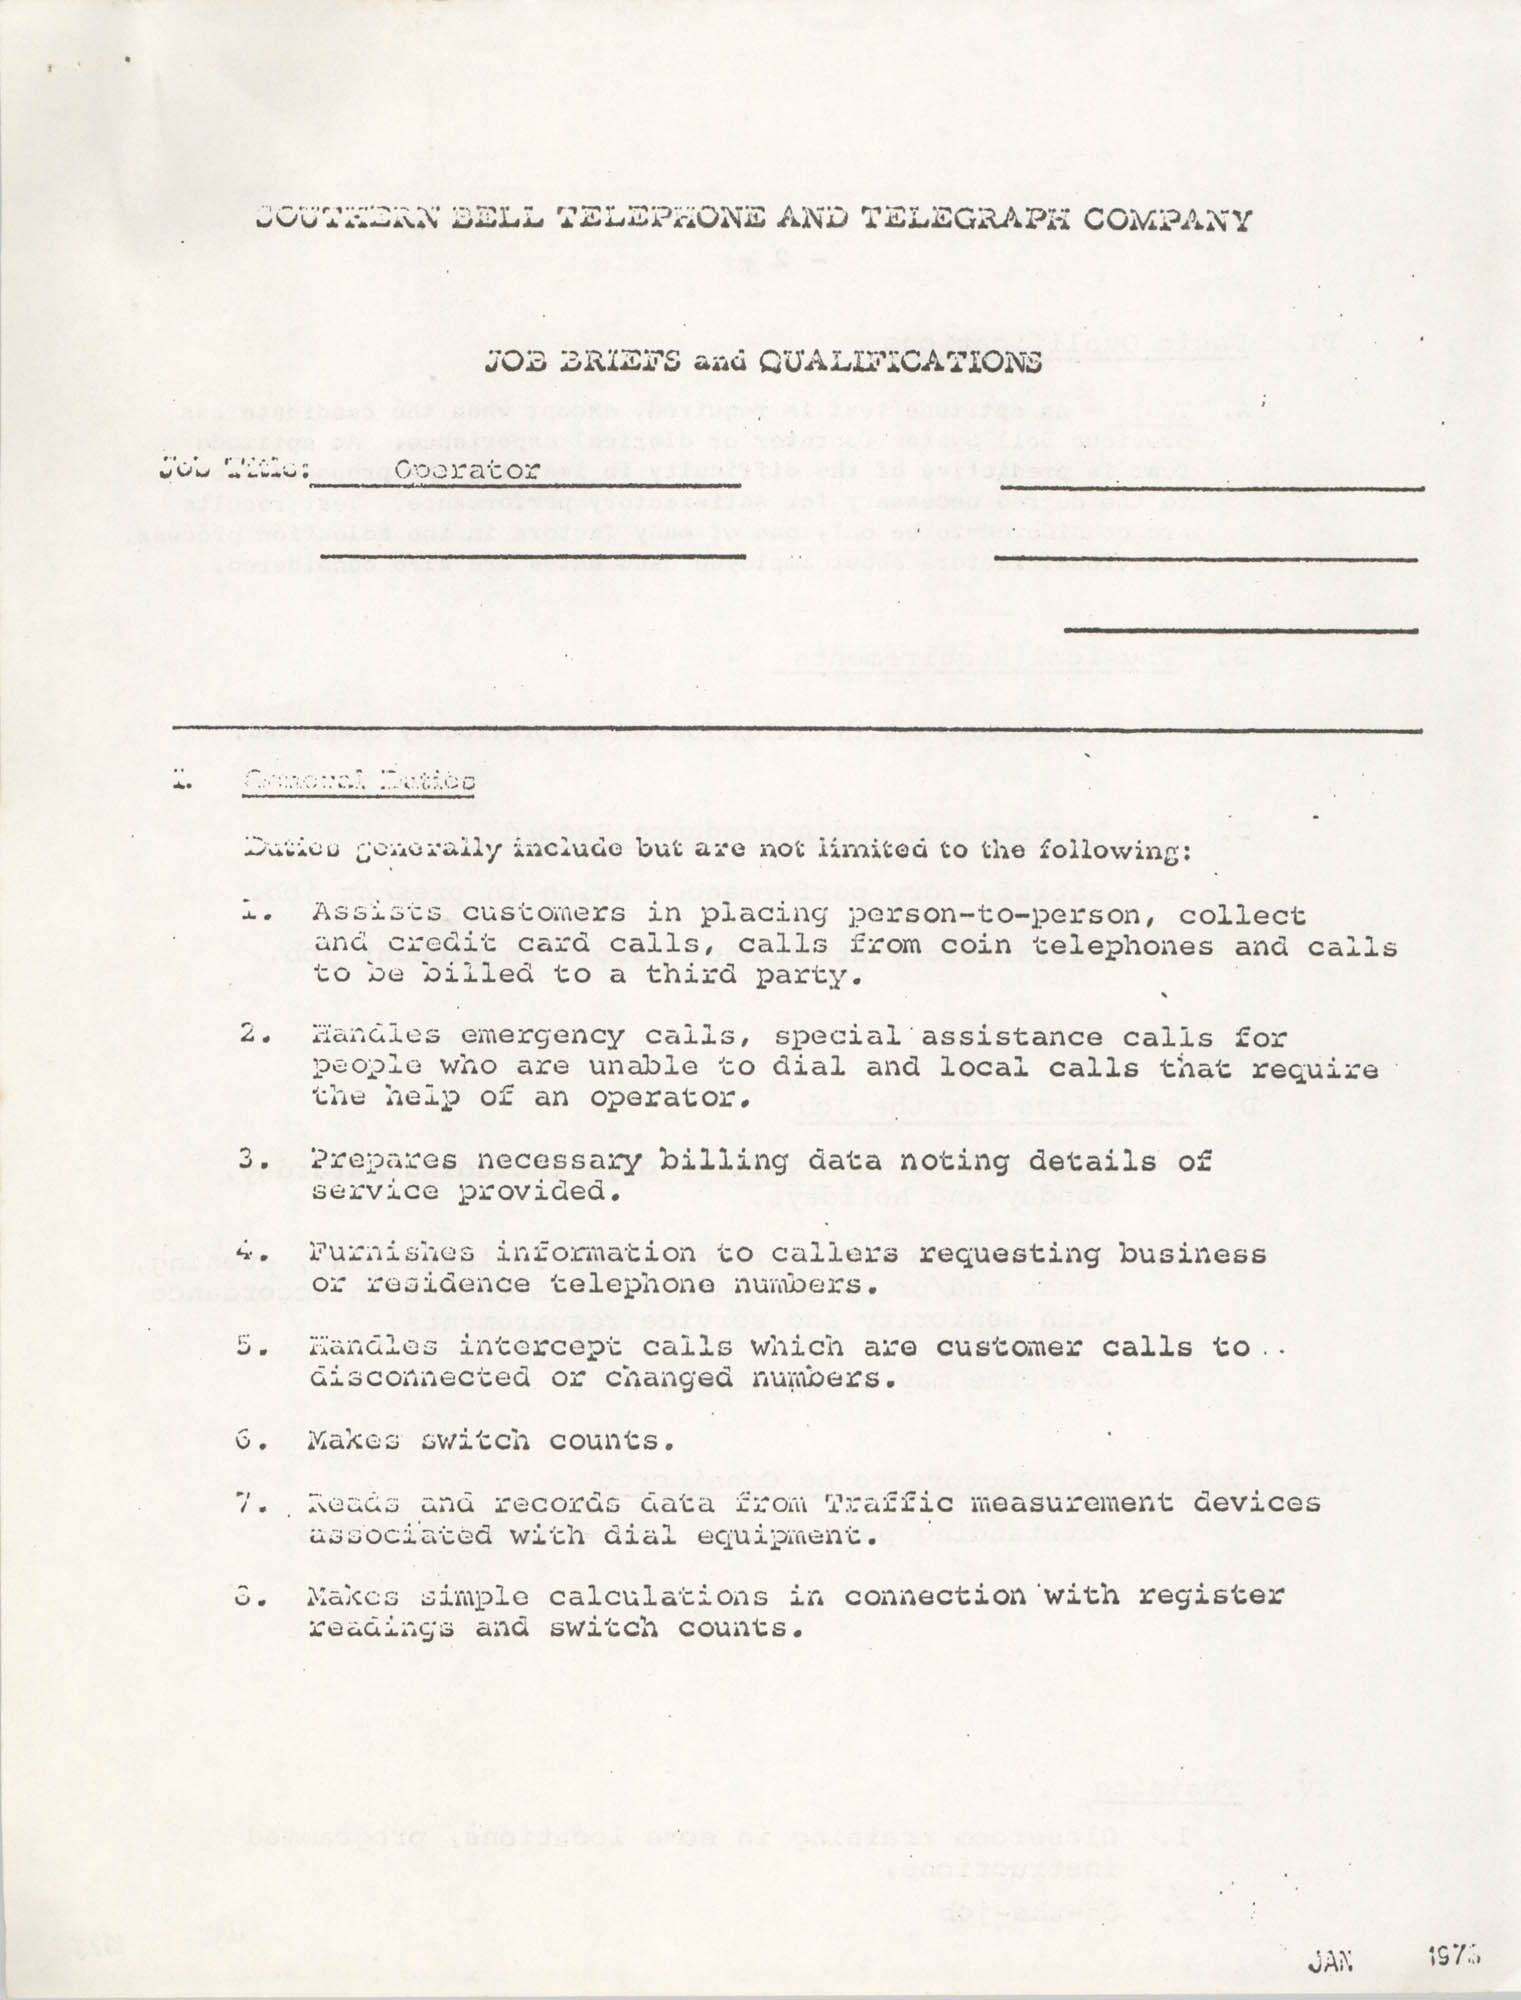 Southern Bell Telephone and Telegraph Company Job Briefs and Qualifications, Operator, Page 1